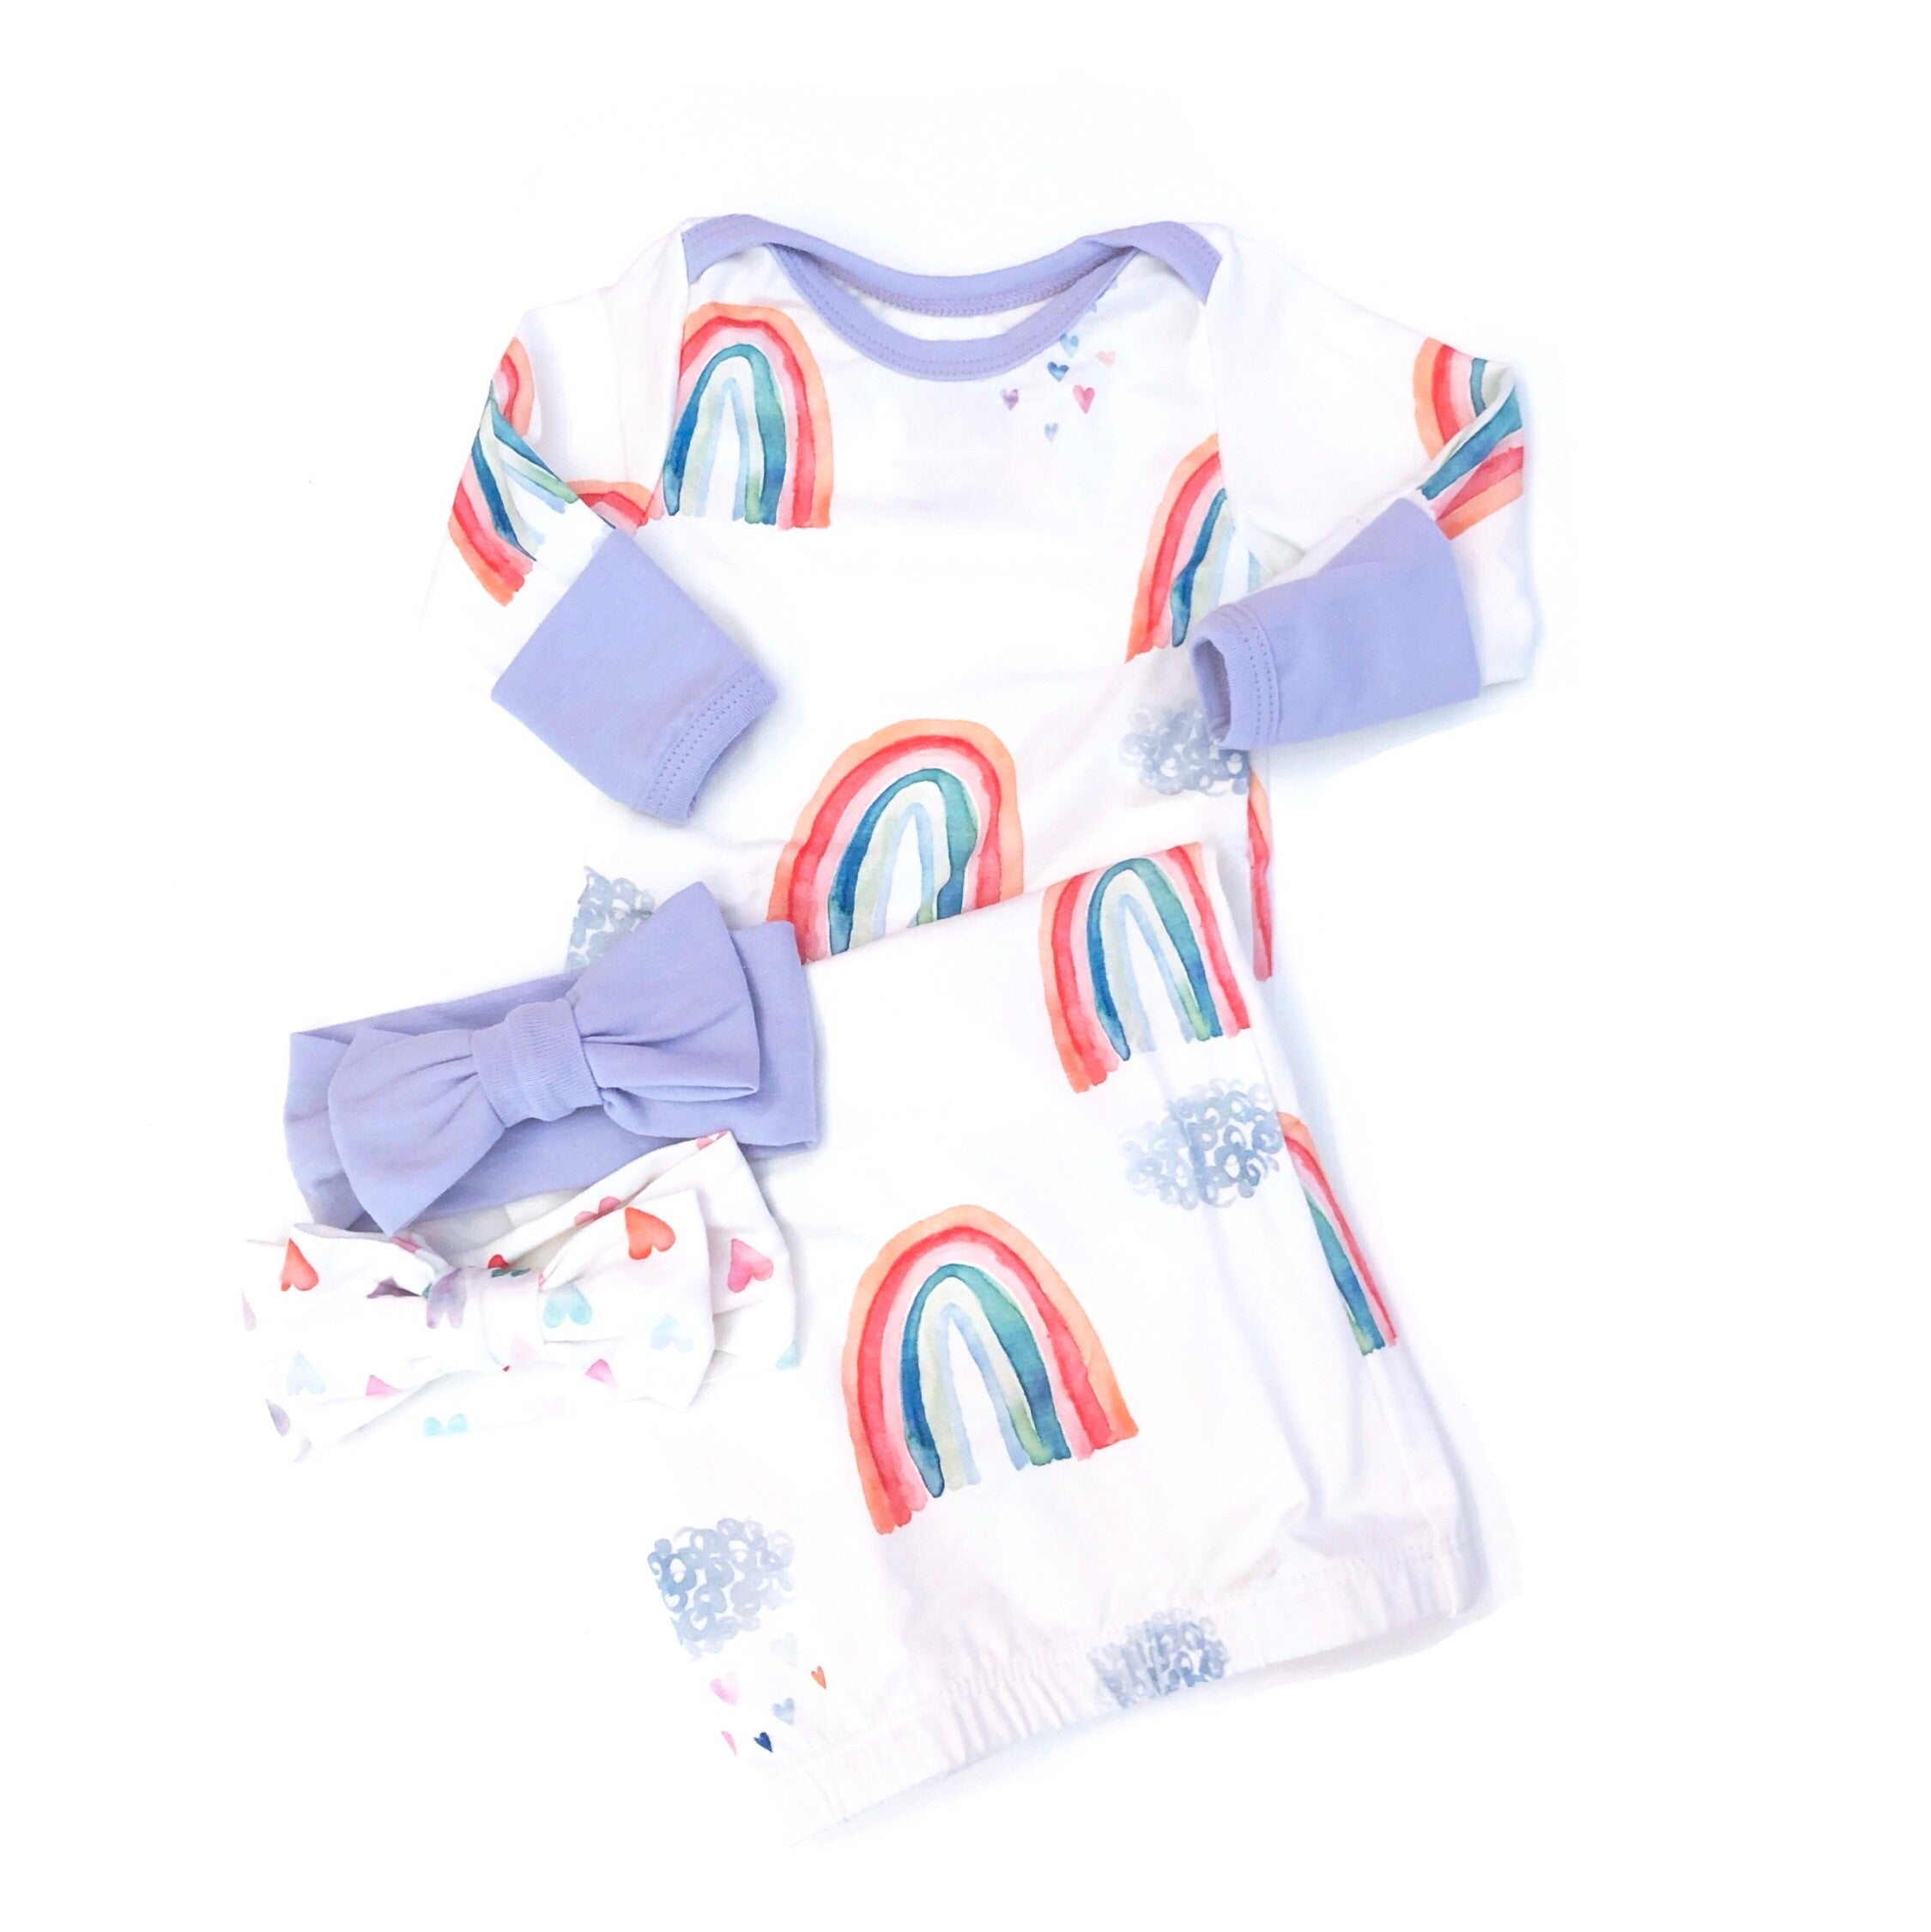 Love & Rainbows Layette Gown with Lavender Accents